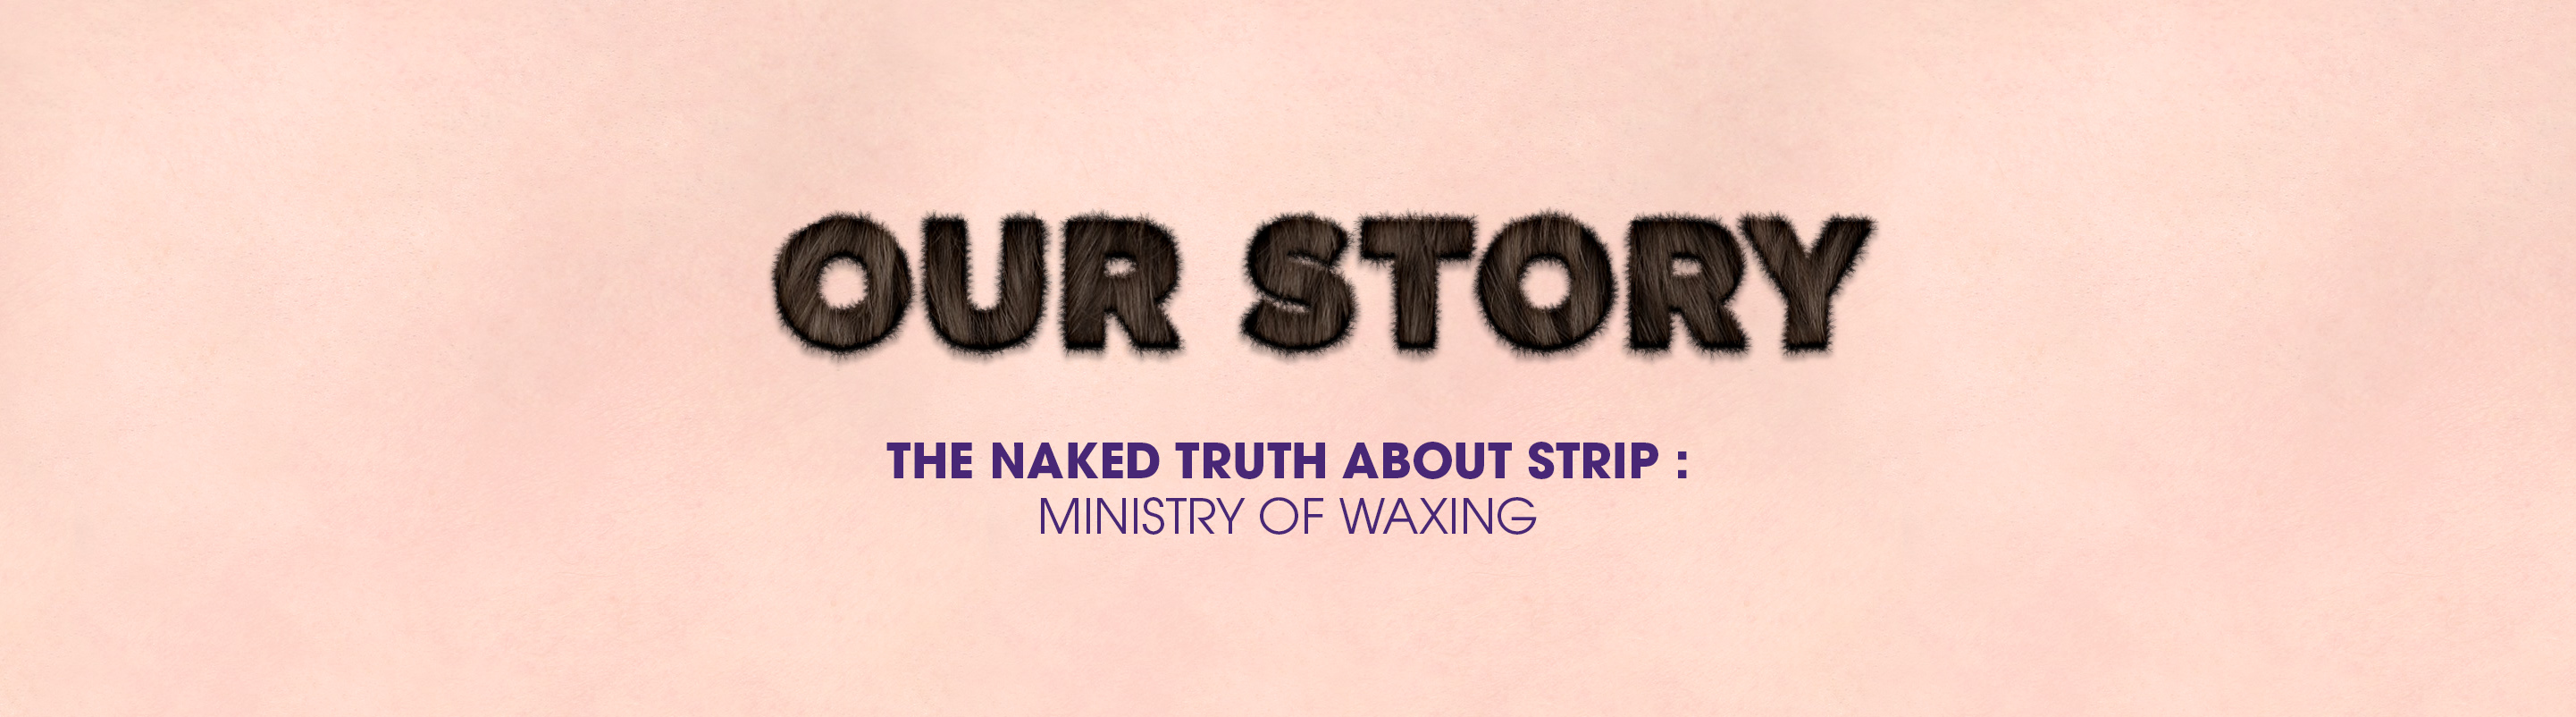 Our Story, The Naked Truth Behind Strip